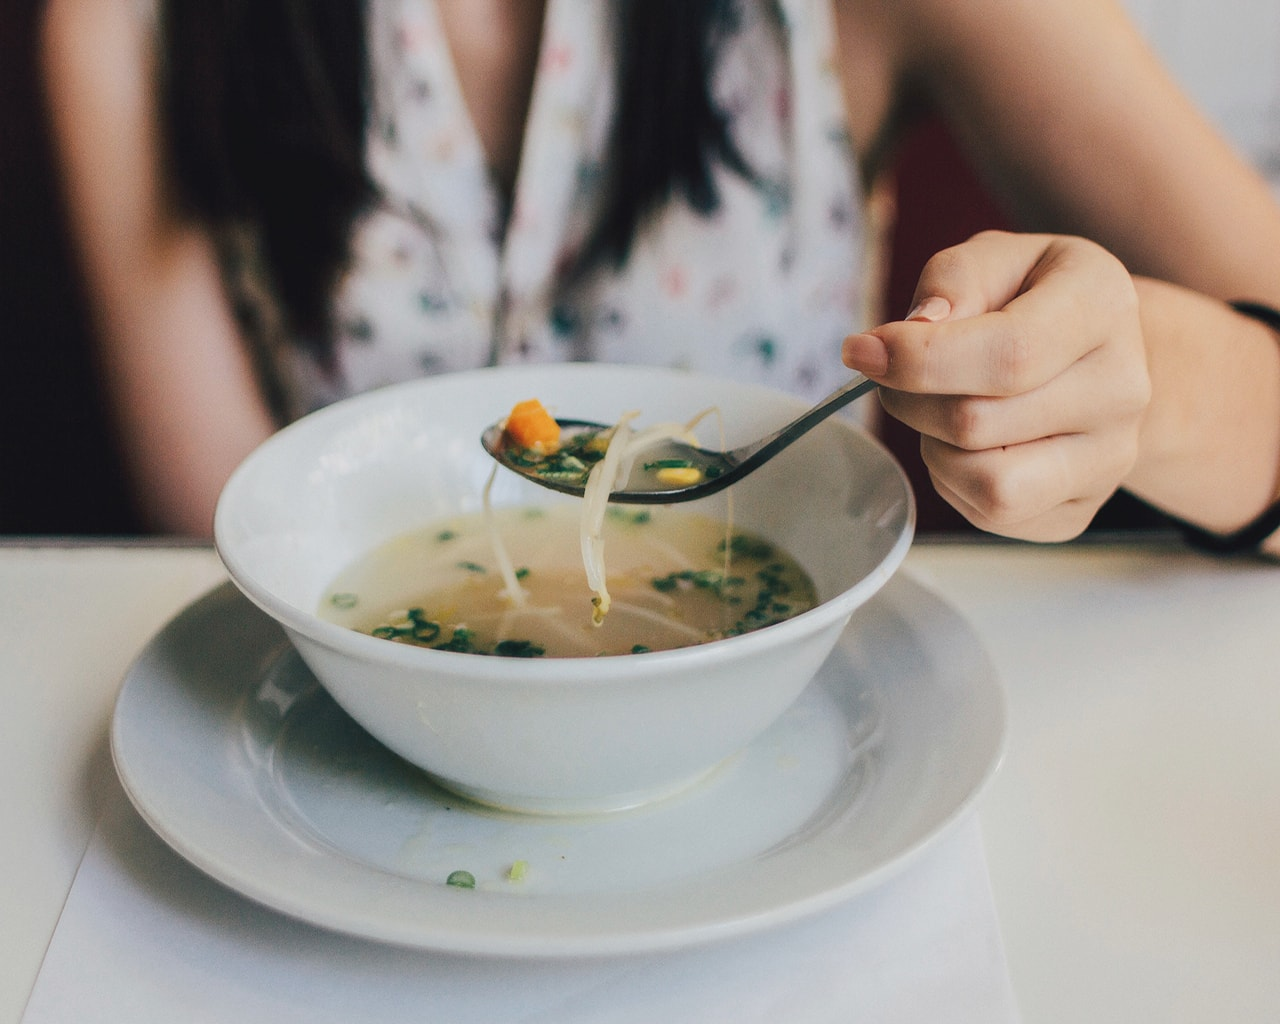 chicken broth, coup, eating, food